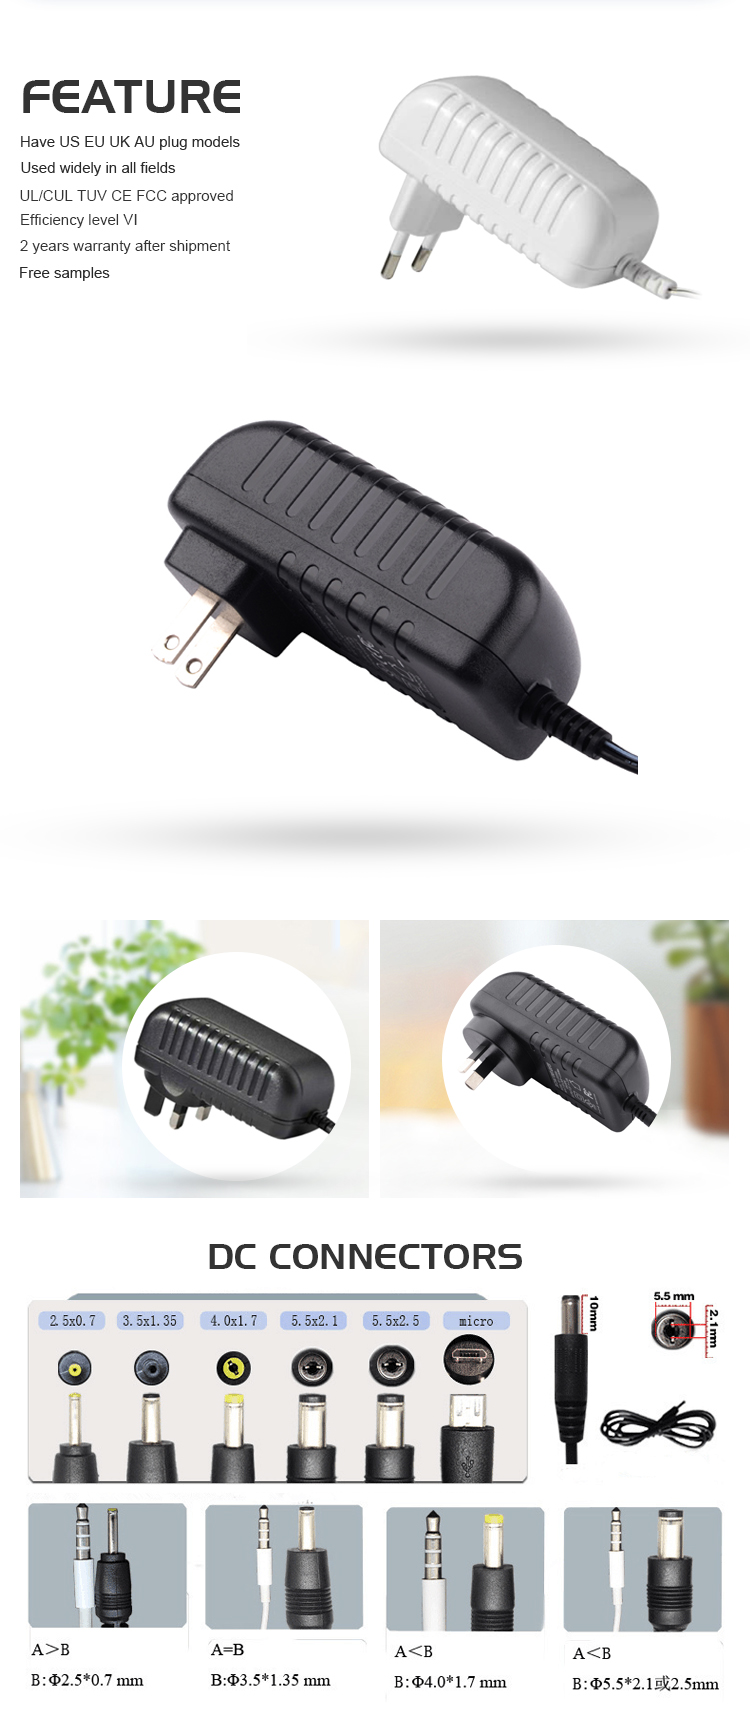 10v 2a dc adapter with UL/CUL TUV CE FCC PSE ROHS CB SAA C-tick BIS level VI, 2 years warranty